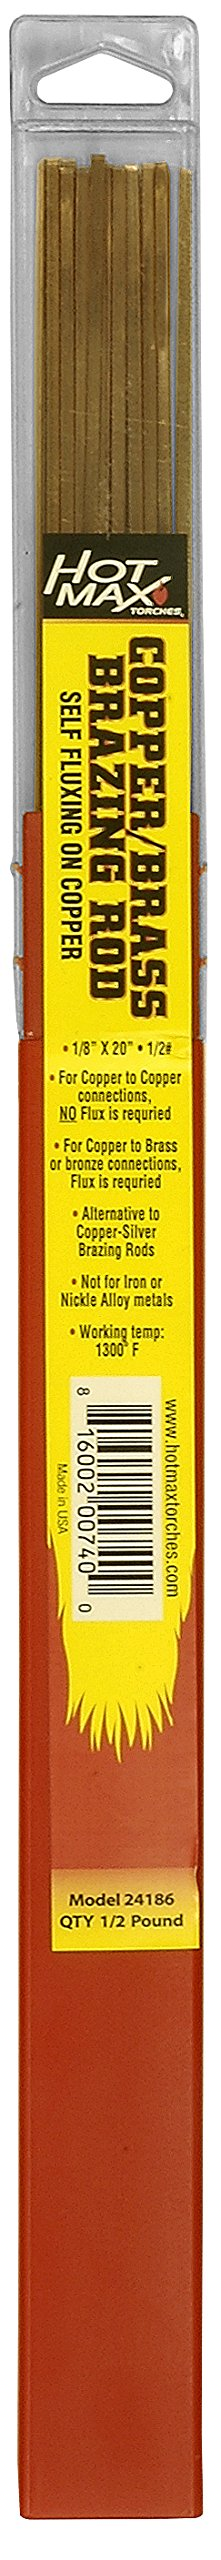 Hot Max 24186 1/8-Inch x 18-Inch Copper/Brass Brazing Rods, 1/2# by Battat